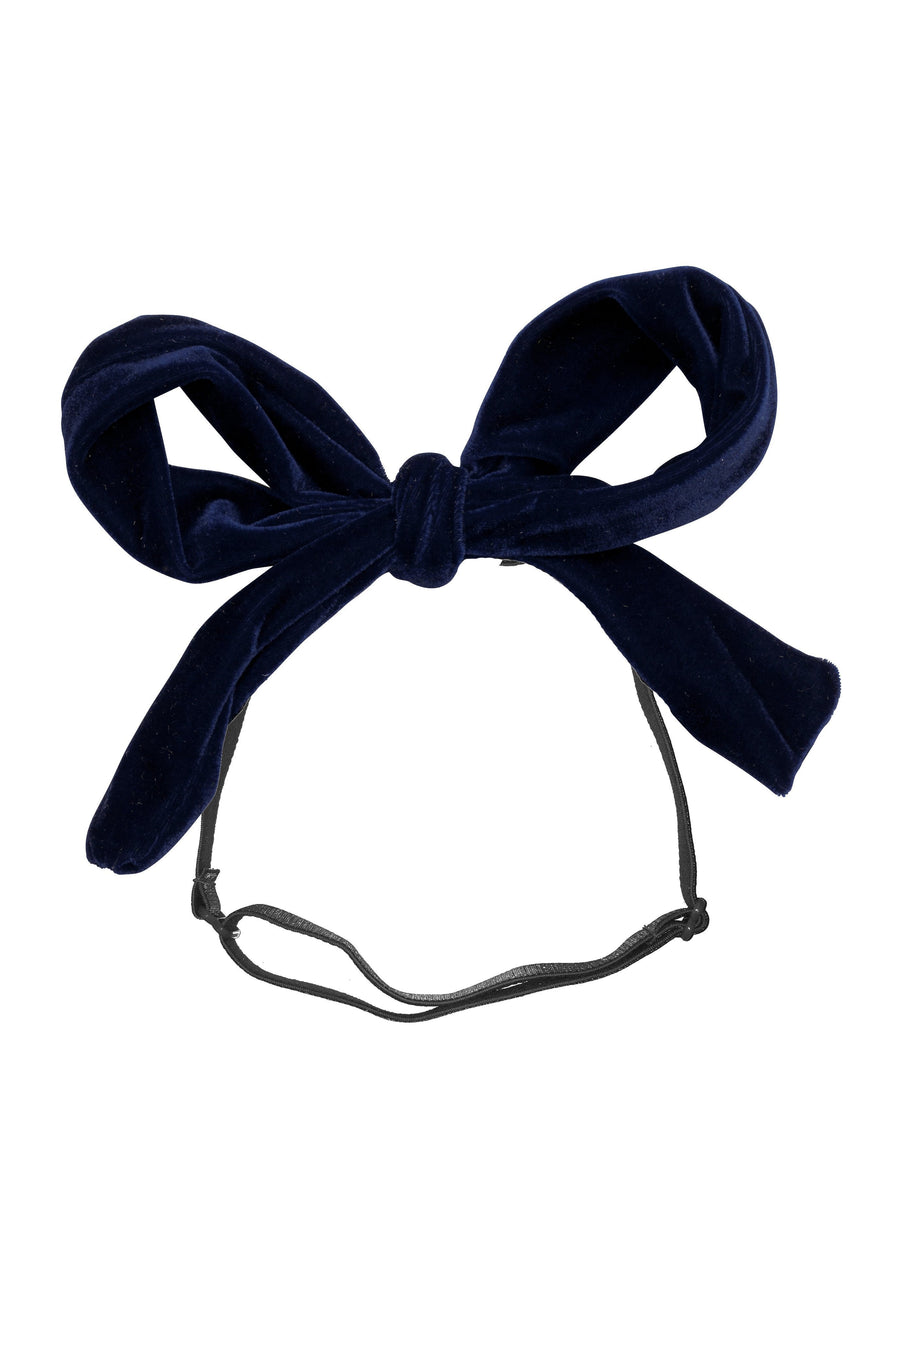 Party Bow Wrap - Navy Velvet - PROJECT 6, modest fashion